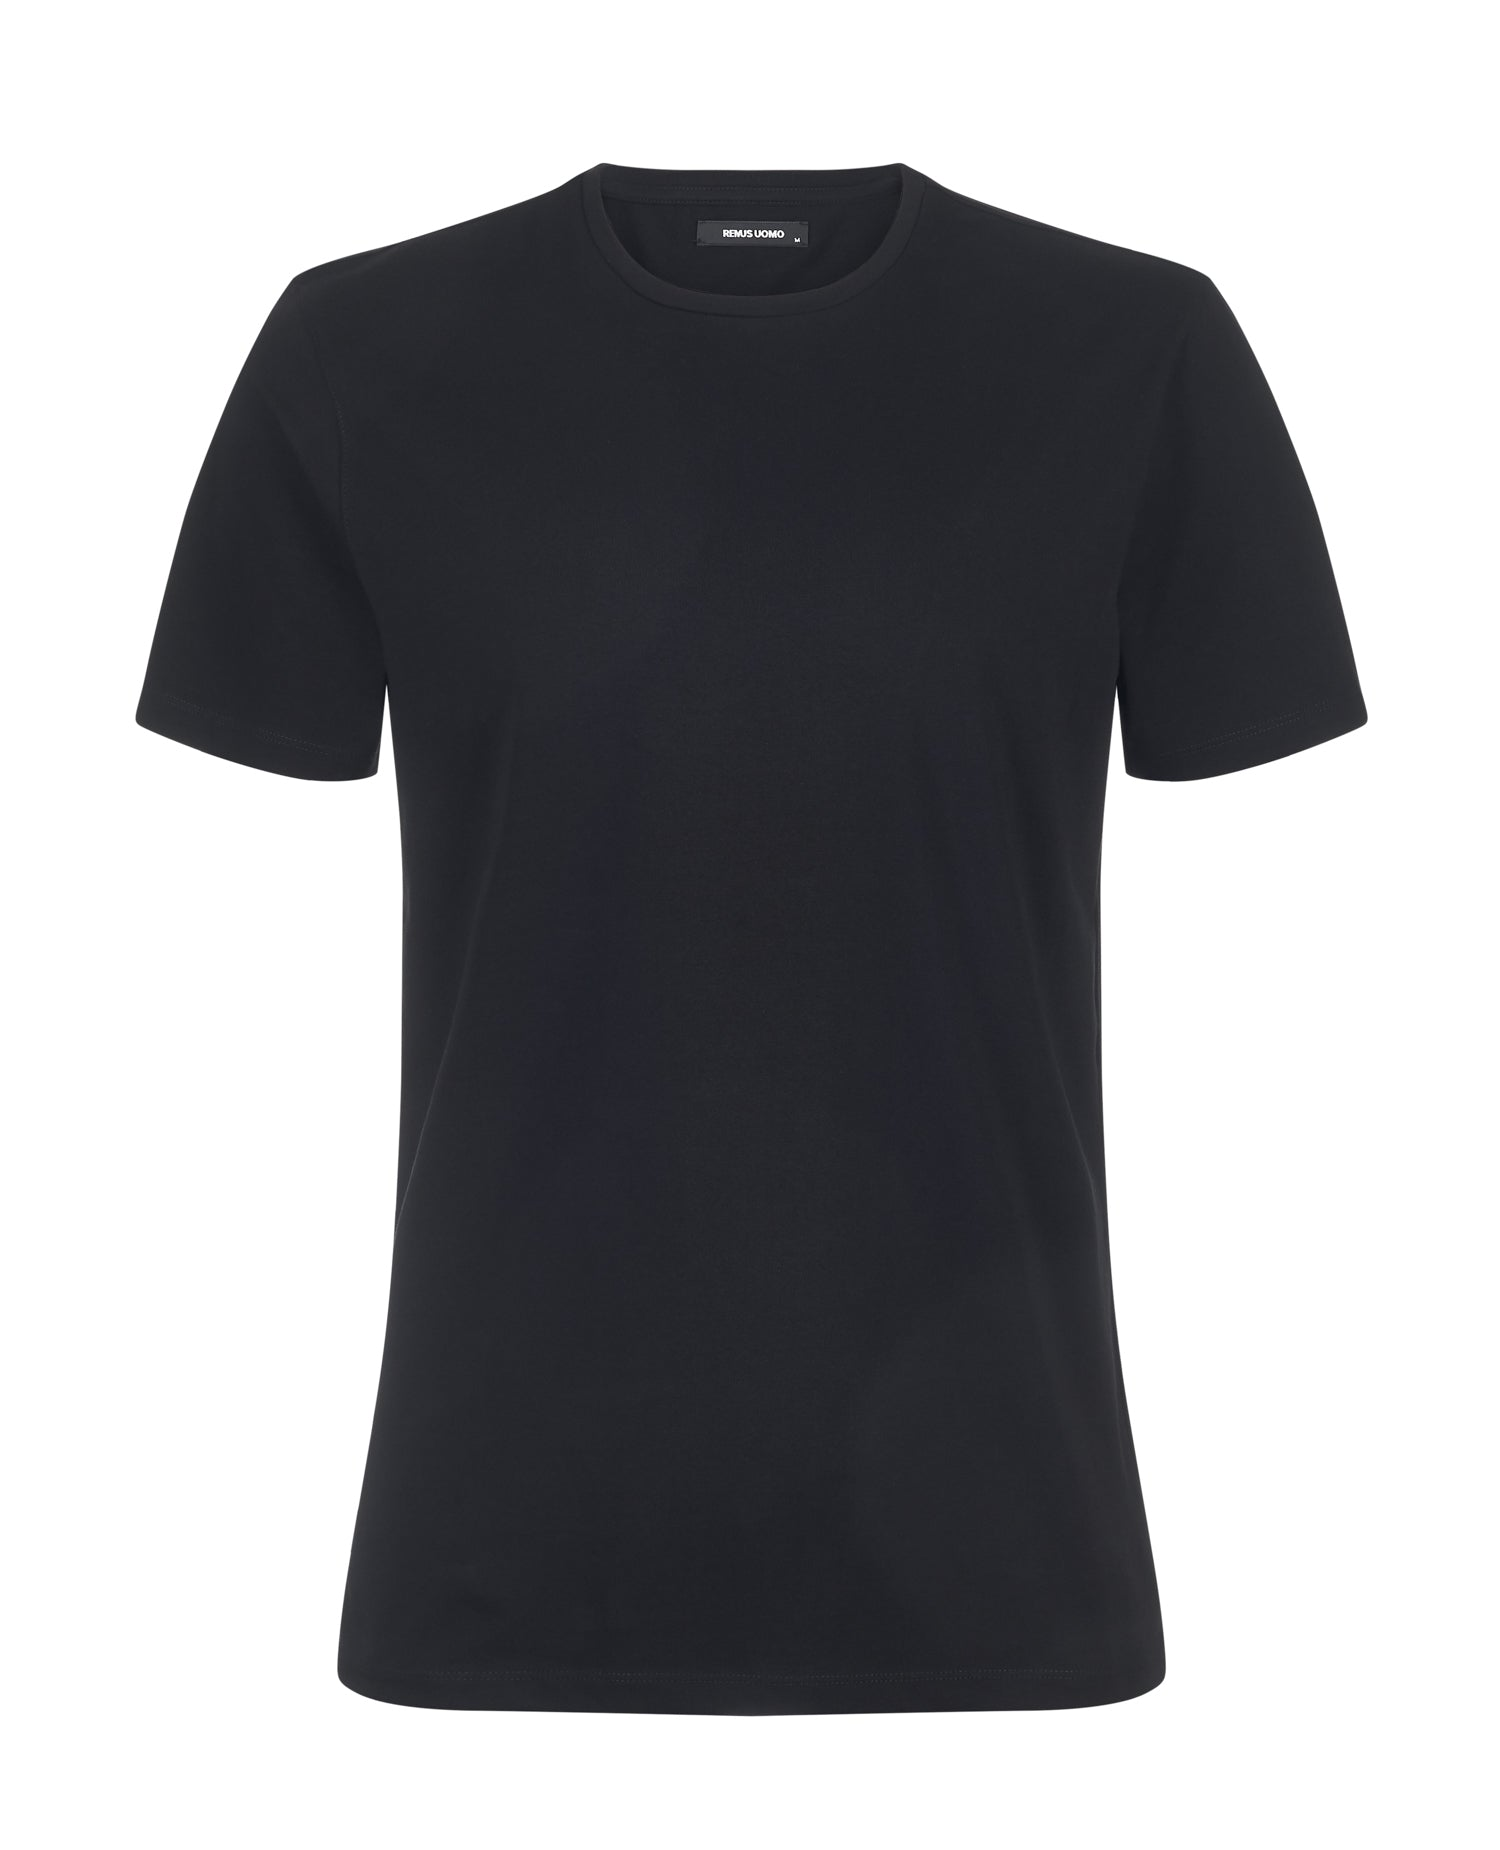 Remus Tapered Fit Cotton-Stretch T-Shirt Black 53121 - 7clothing